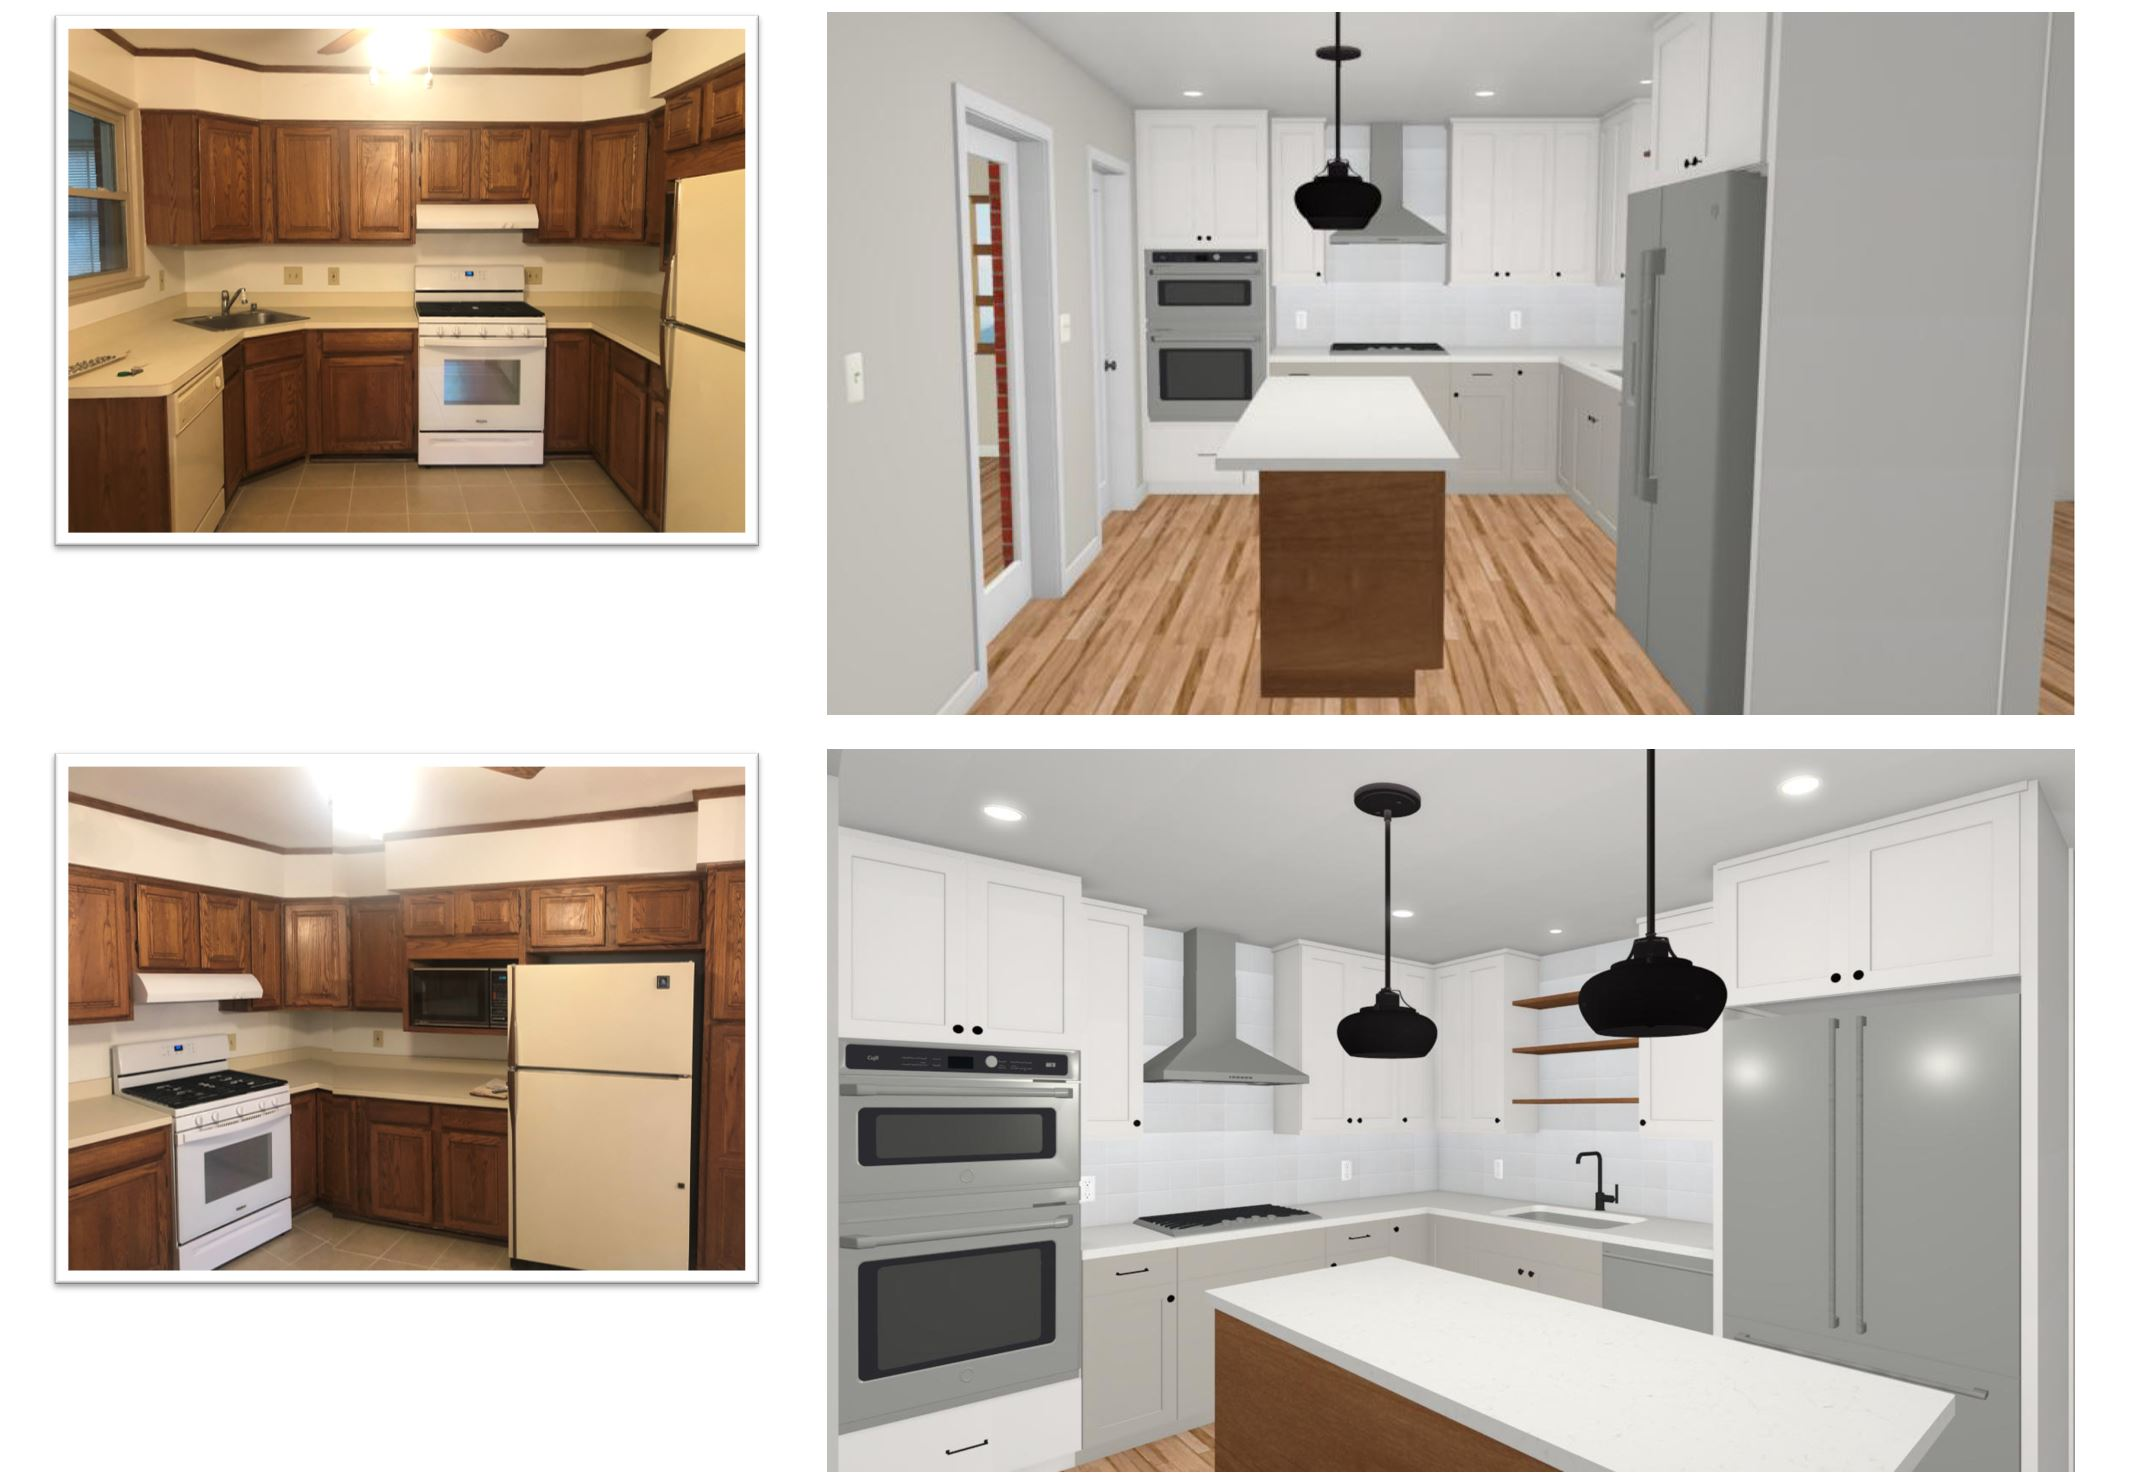 Collage of before and after photos of kitchen remodeling project